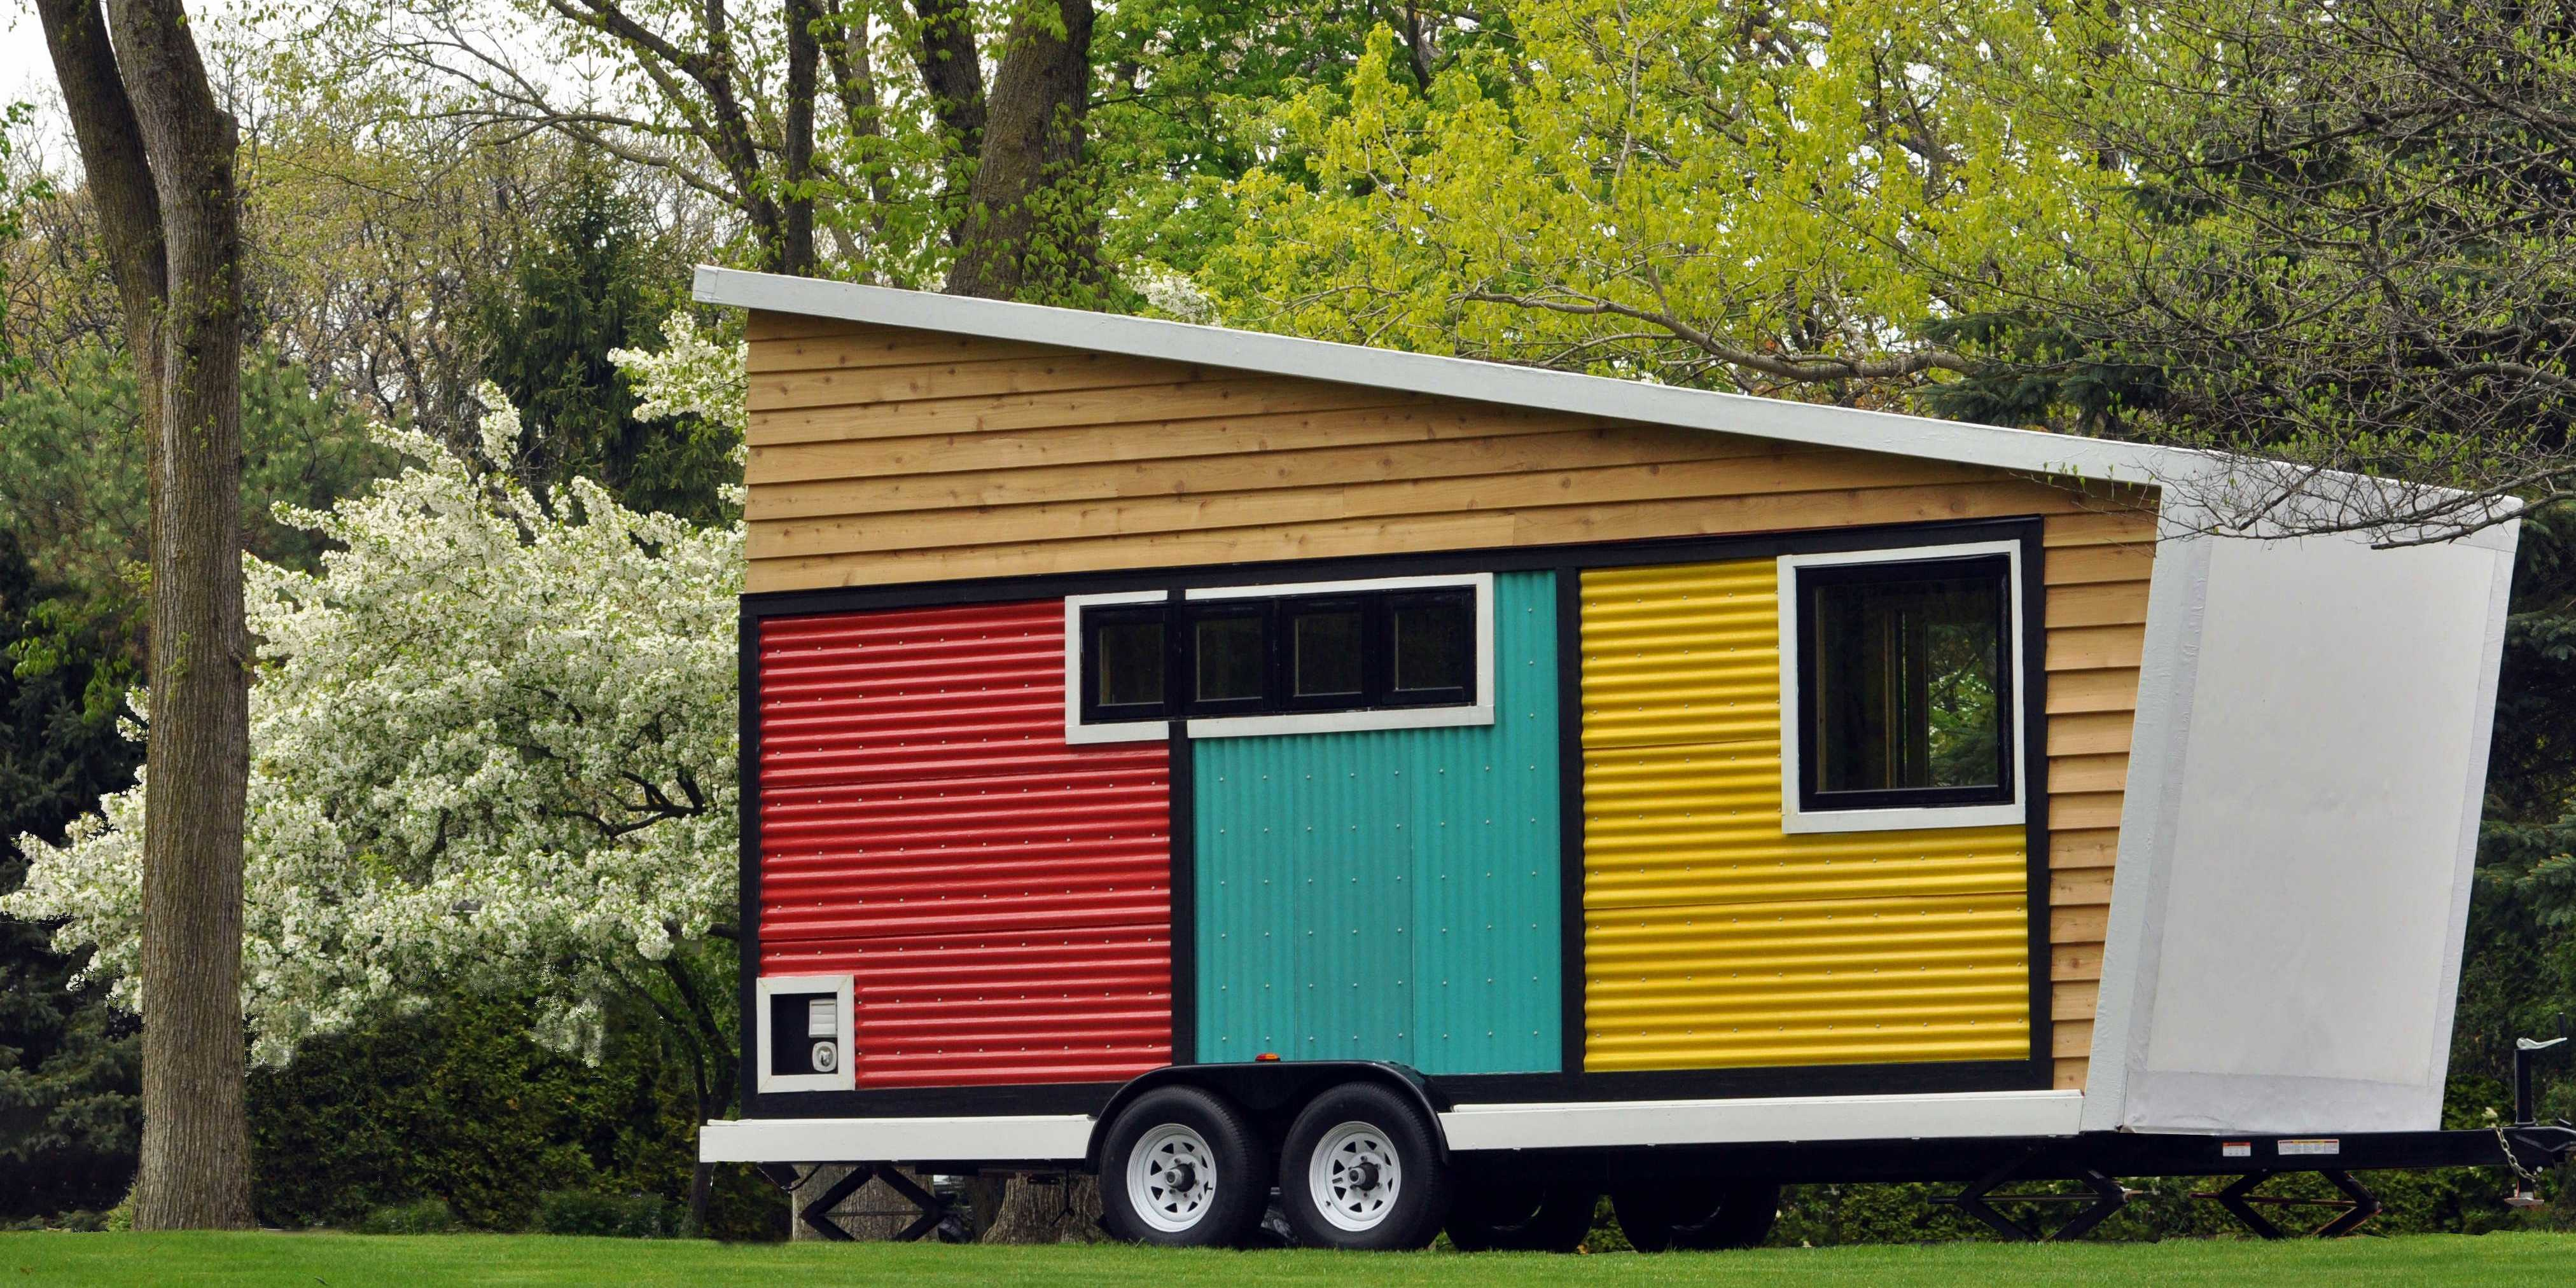 8 reasons to consider a tiny home